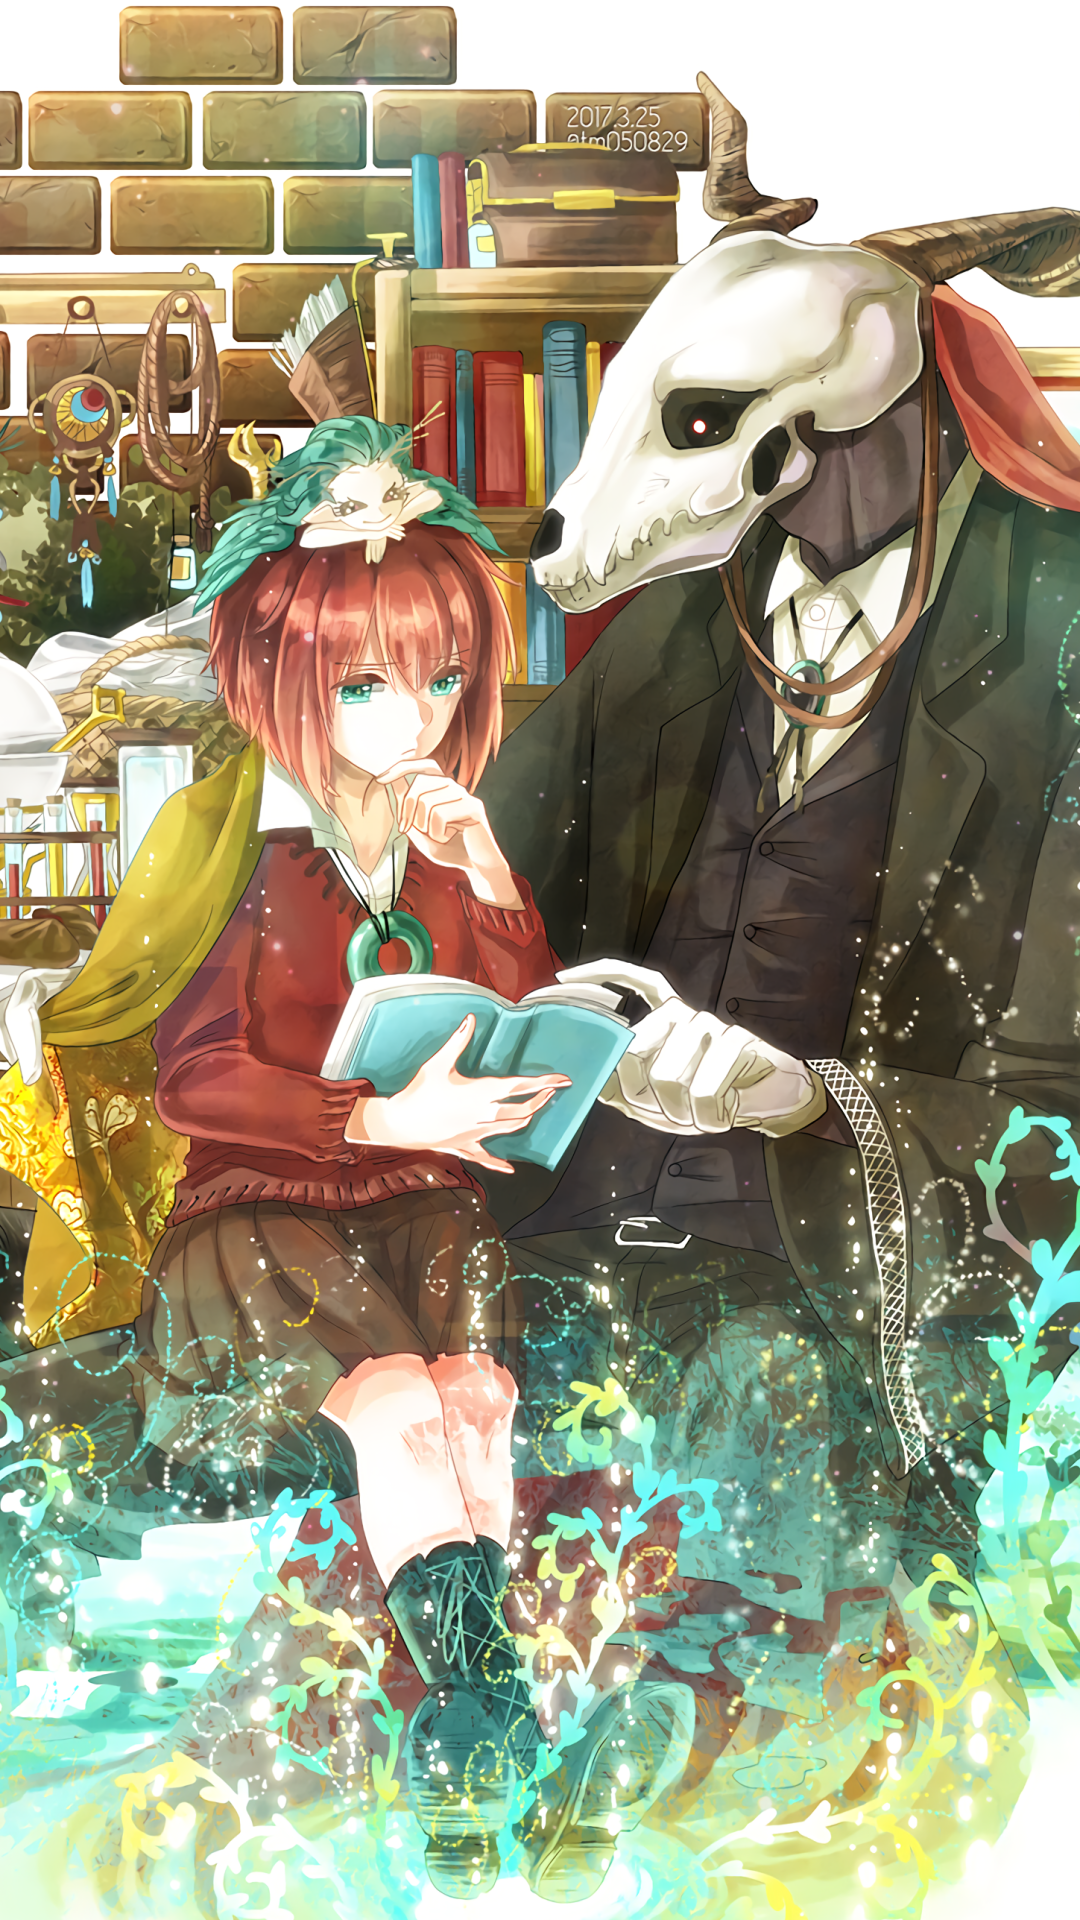 Anime The Ancient Magus Bride 1080x1920 Wallpaper Id 710807